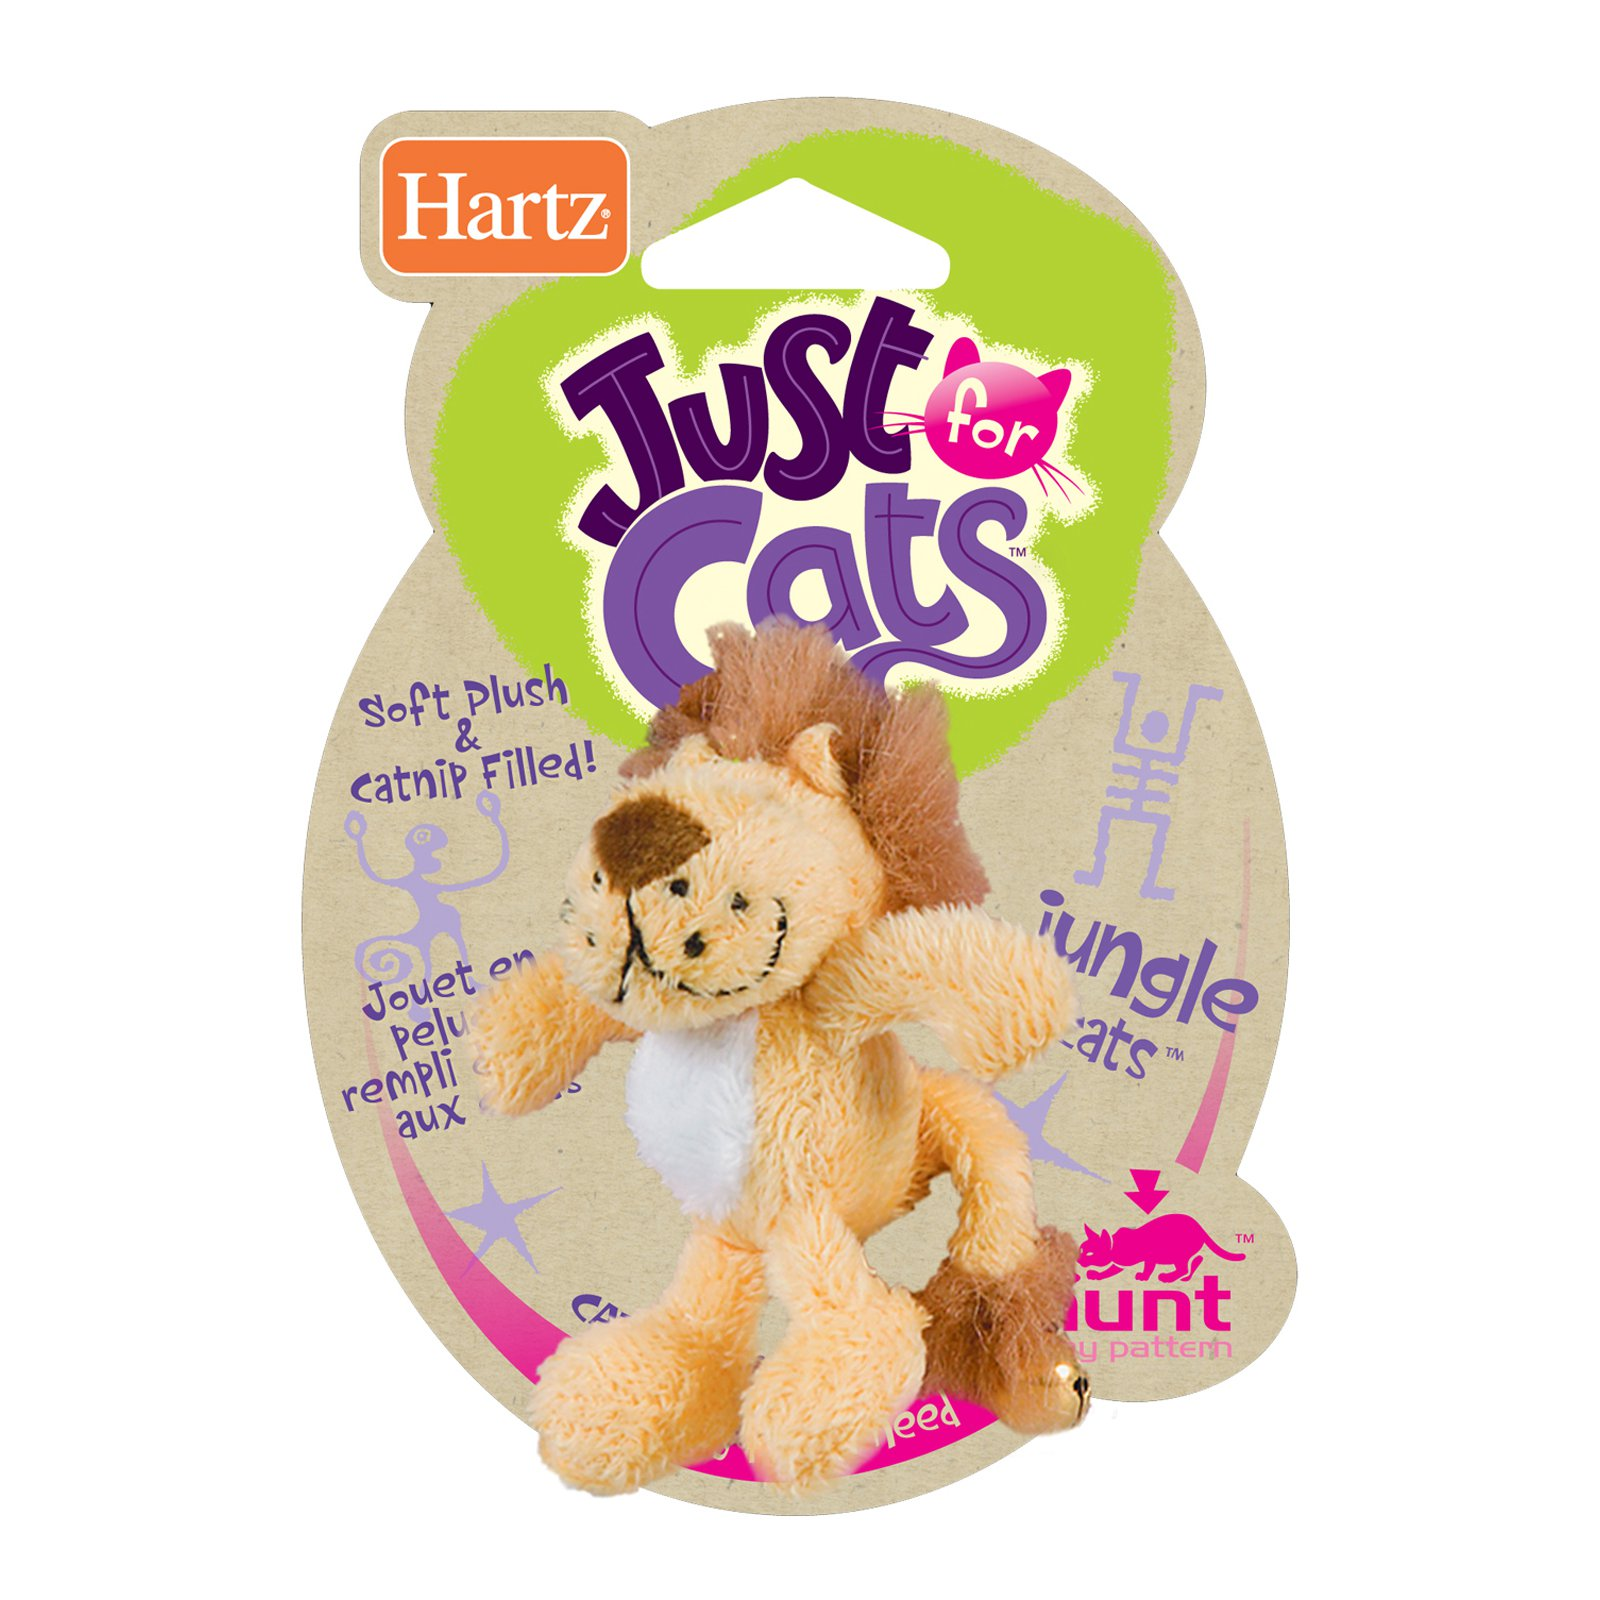 Hartz Assorted Hartz Cat Toy